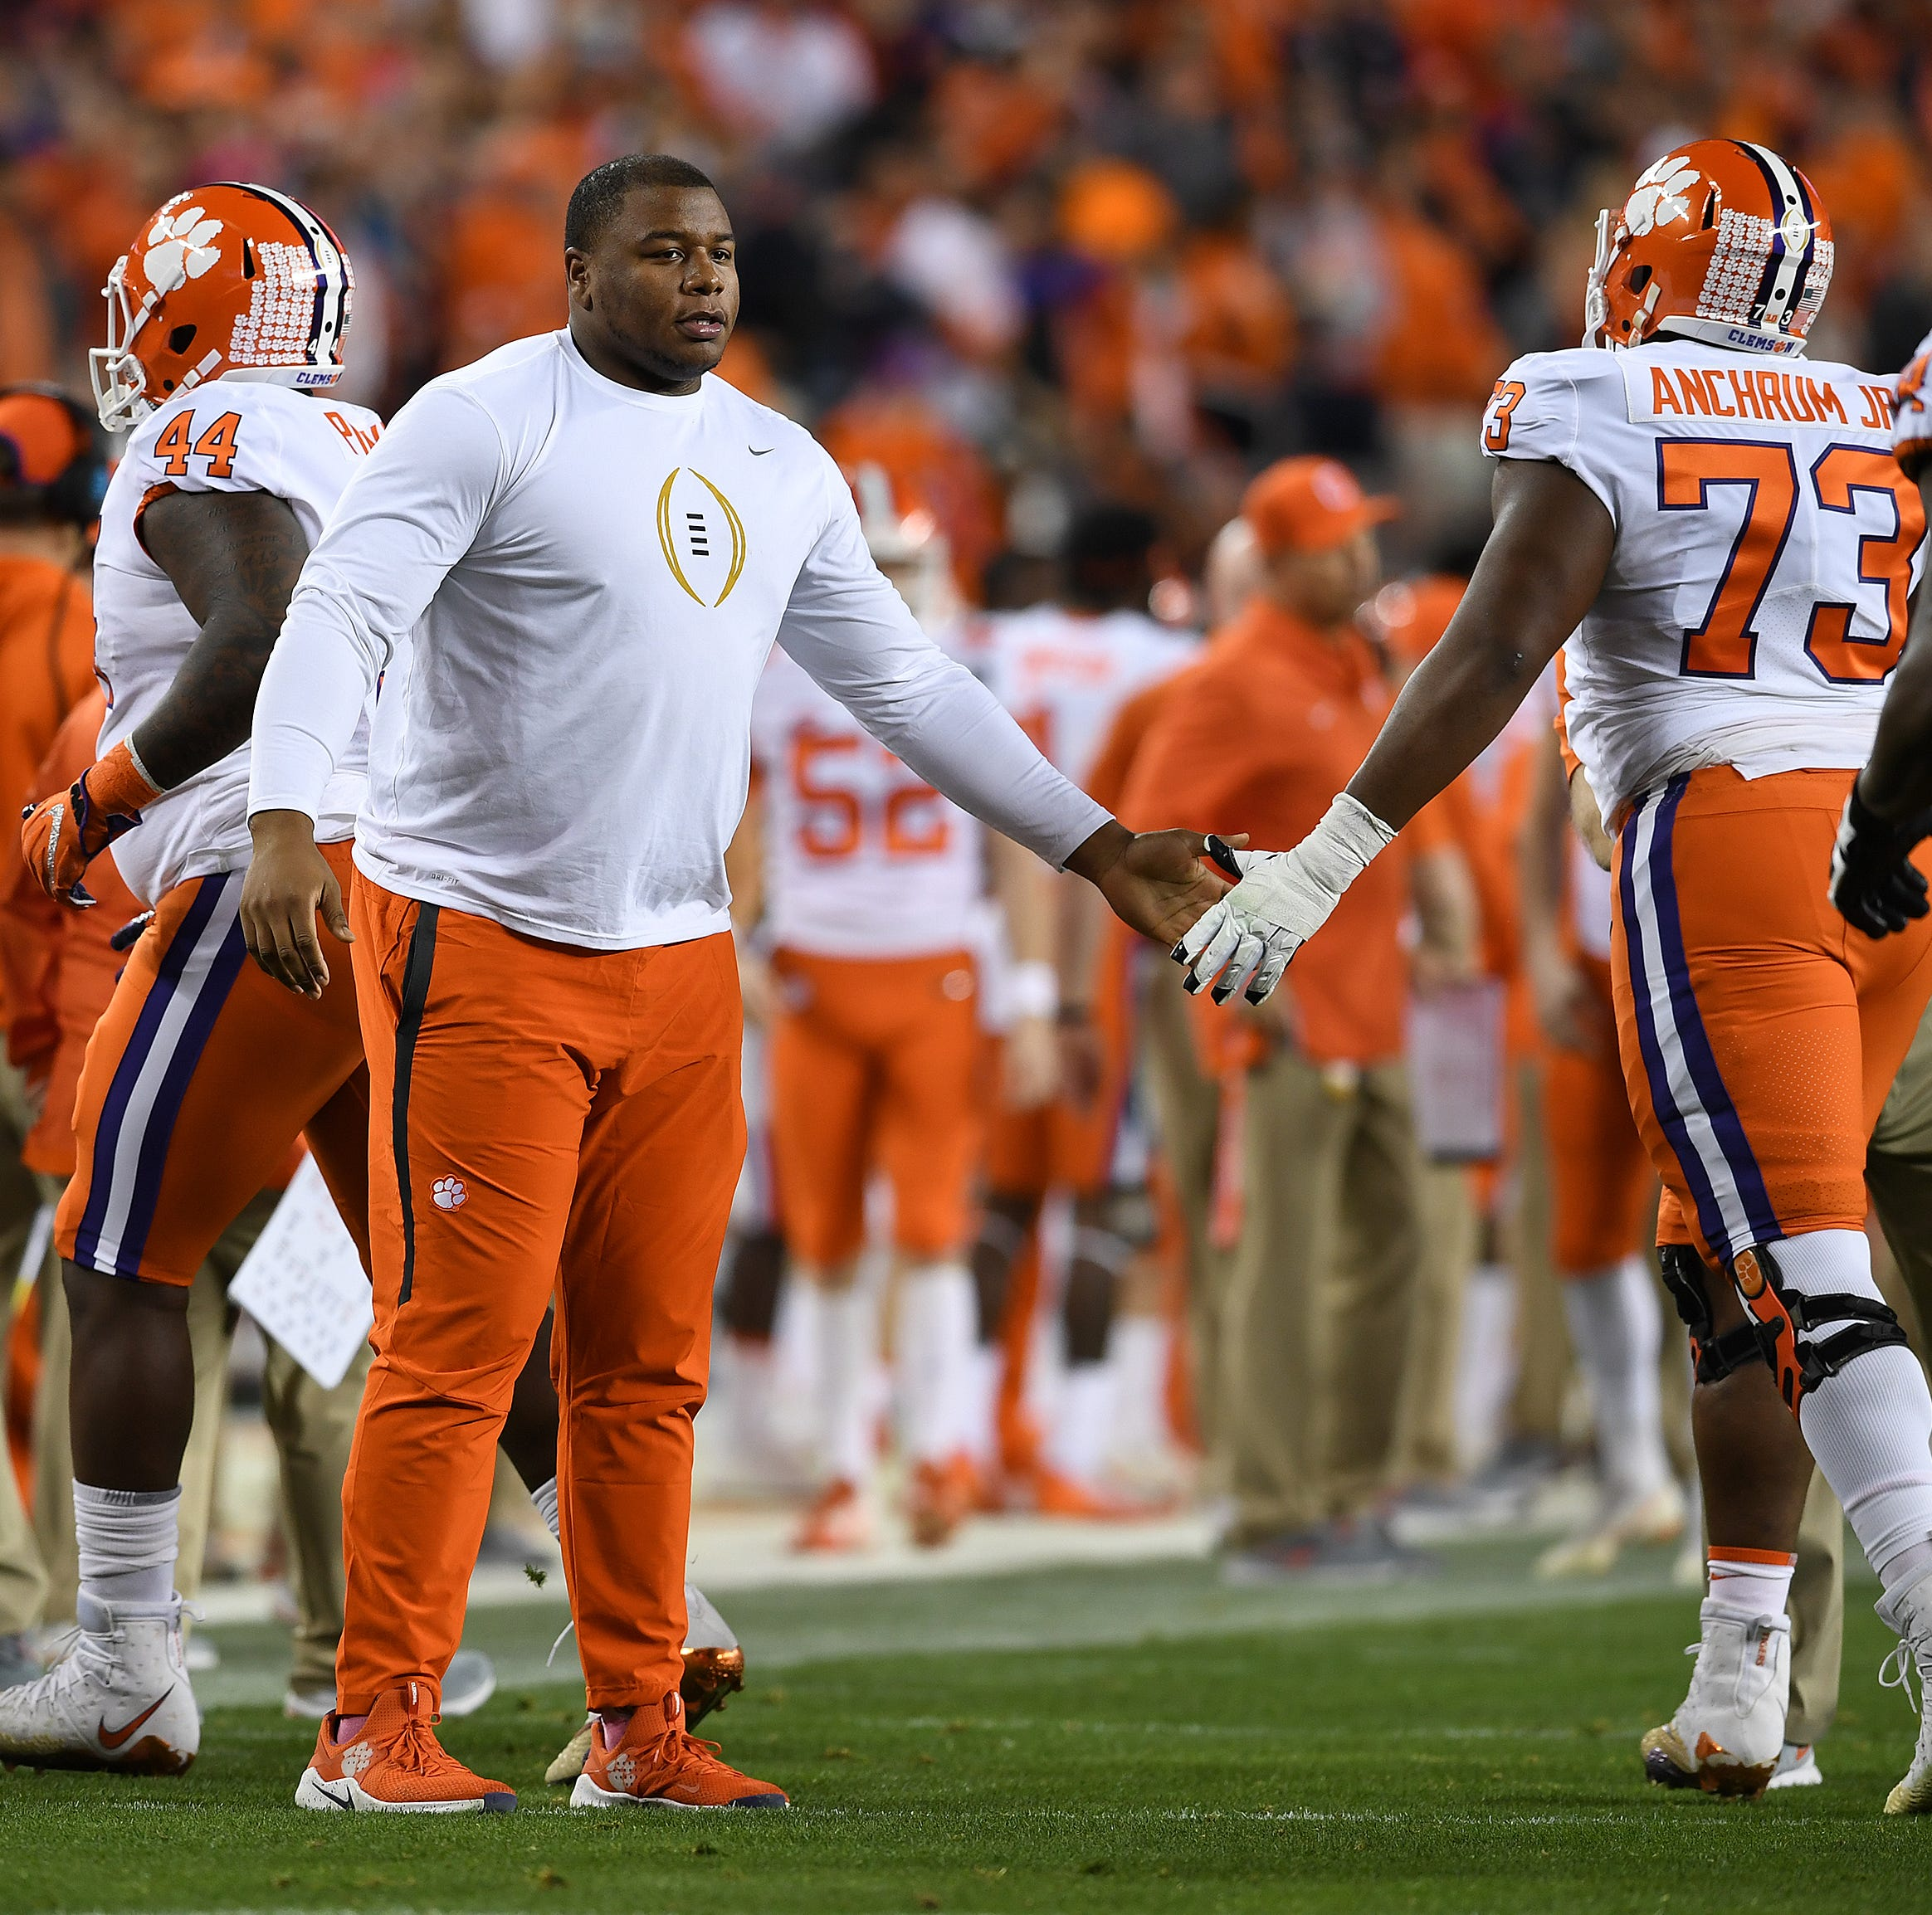 Clemson takes a back seat in NCAA drug-testing appeal by three football players